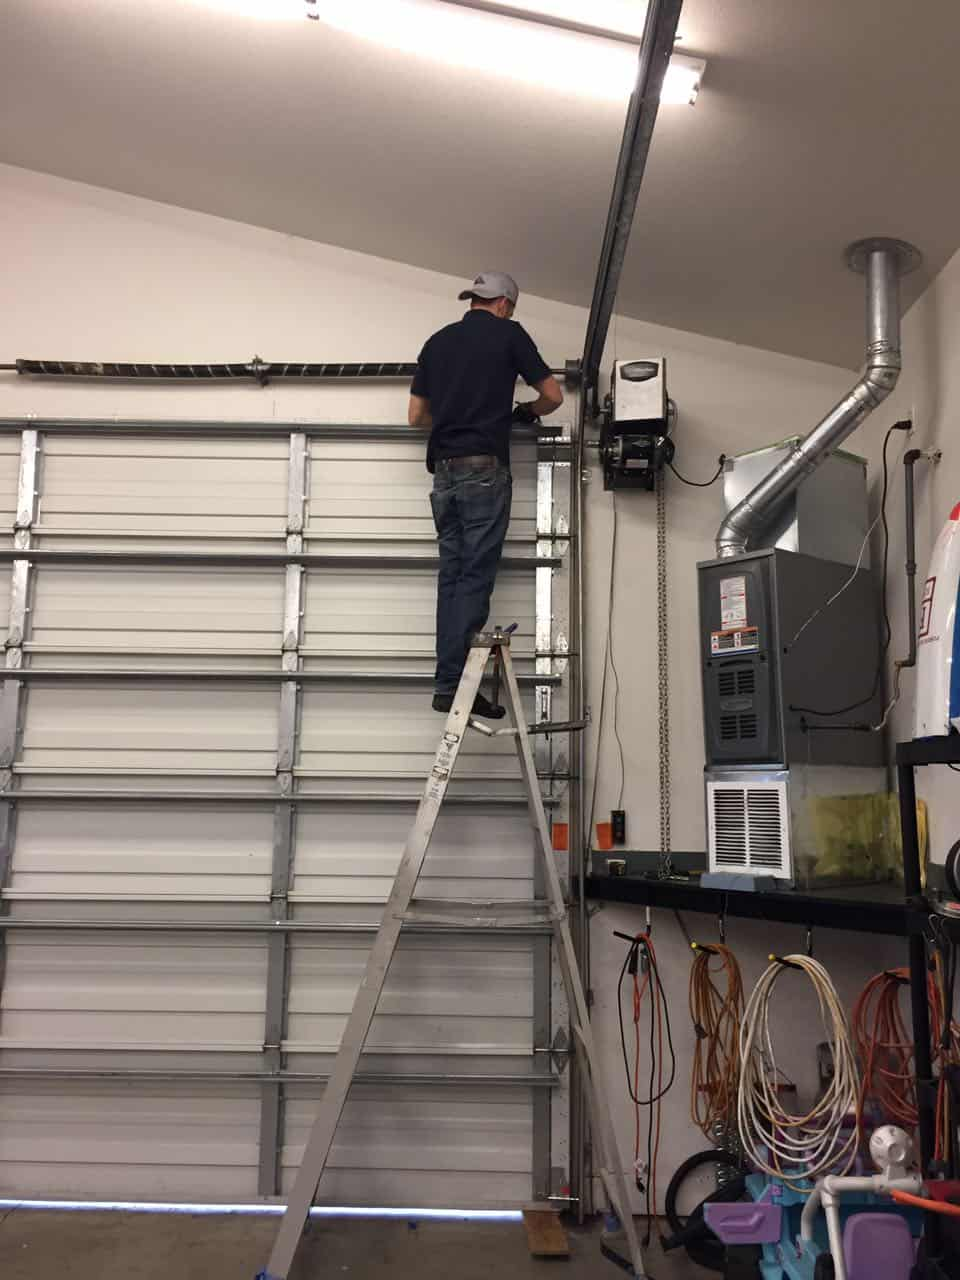 Commercial garage door repair in sumner wa by elite tech for Garage door repair tacoma